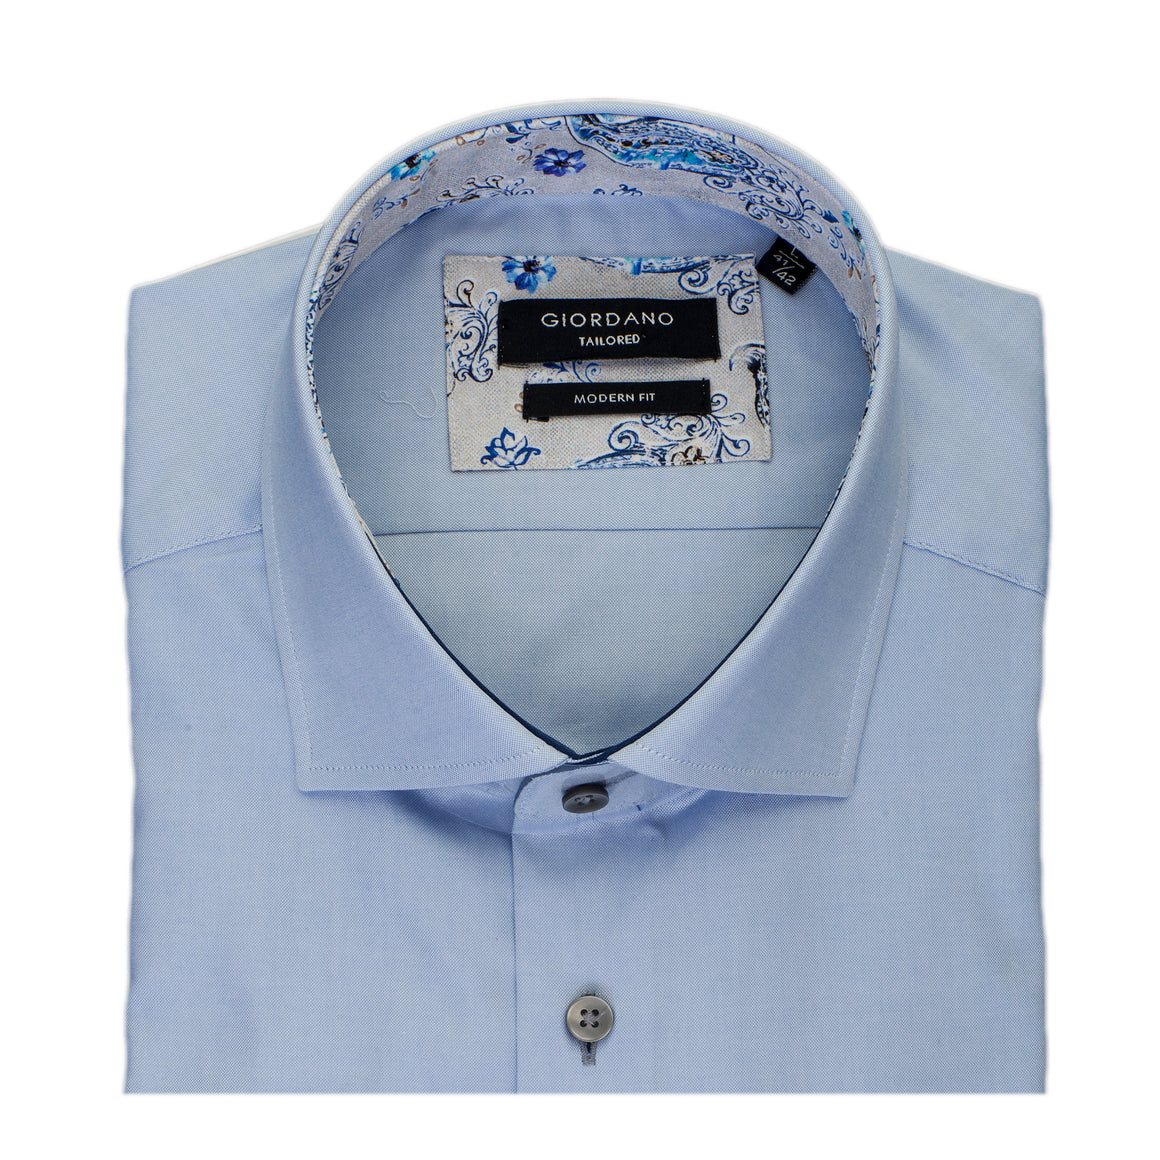 Satin Feel Shirt for Men in Sky Blue